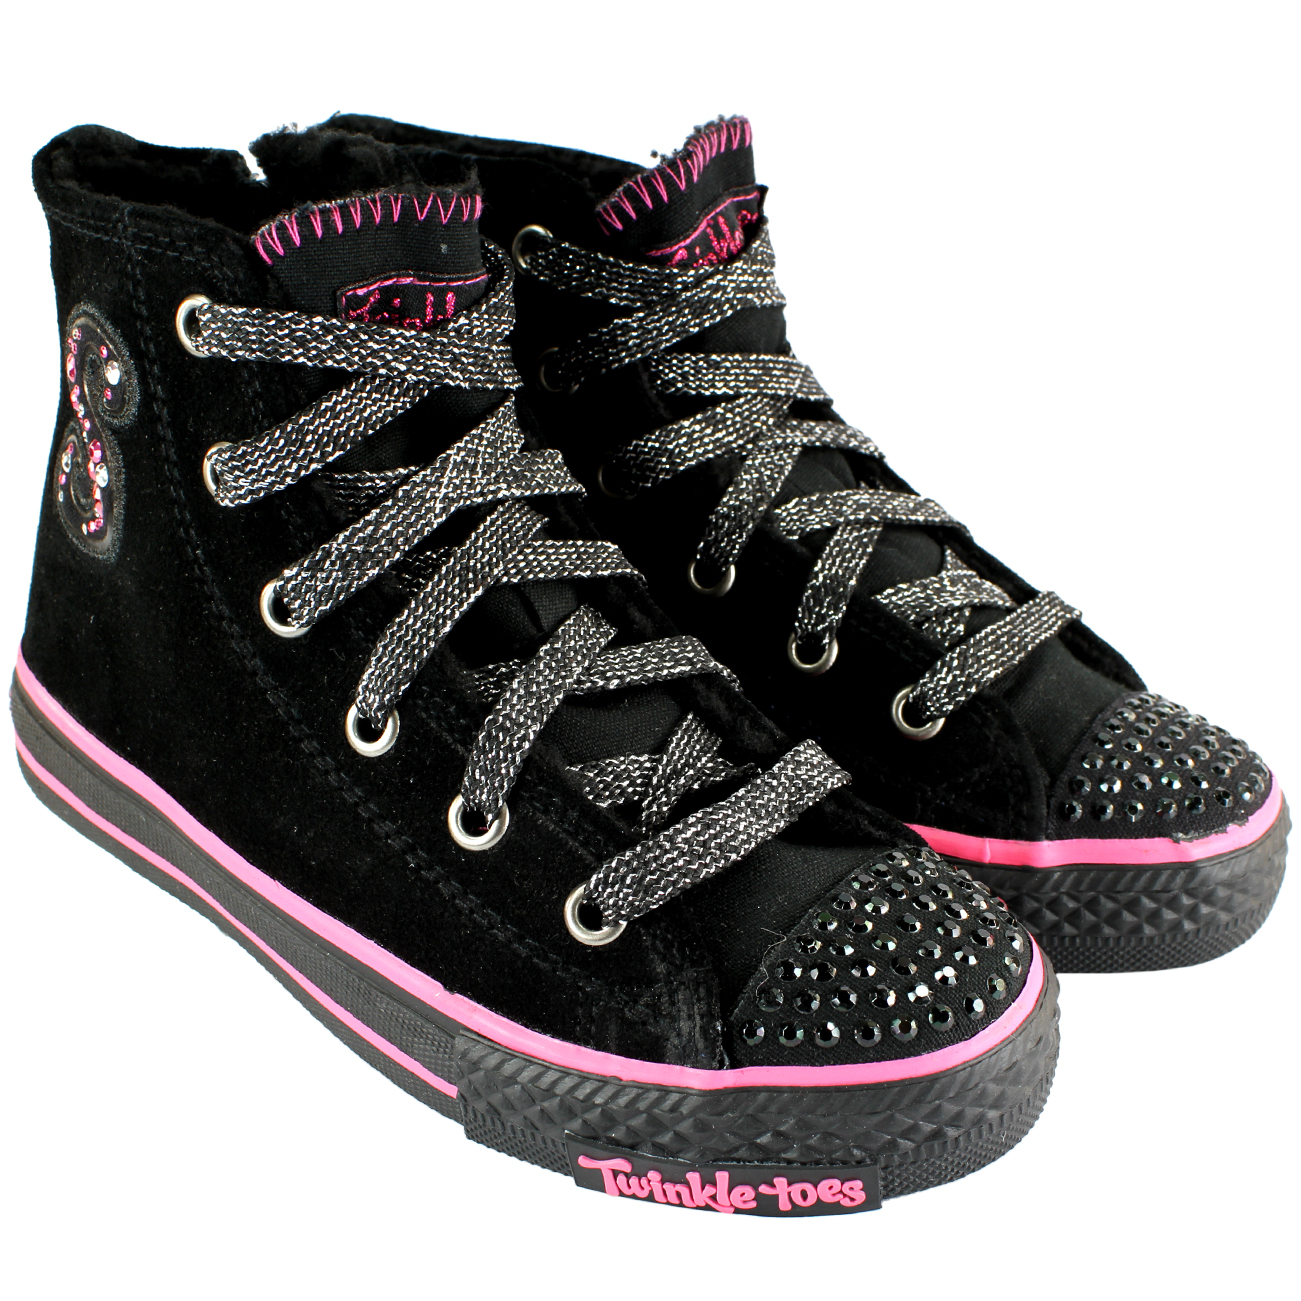 Skechers Twinkle Toes Dreamsters High Top